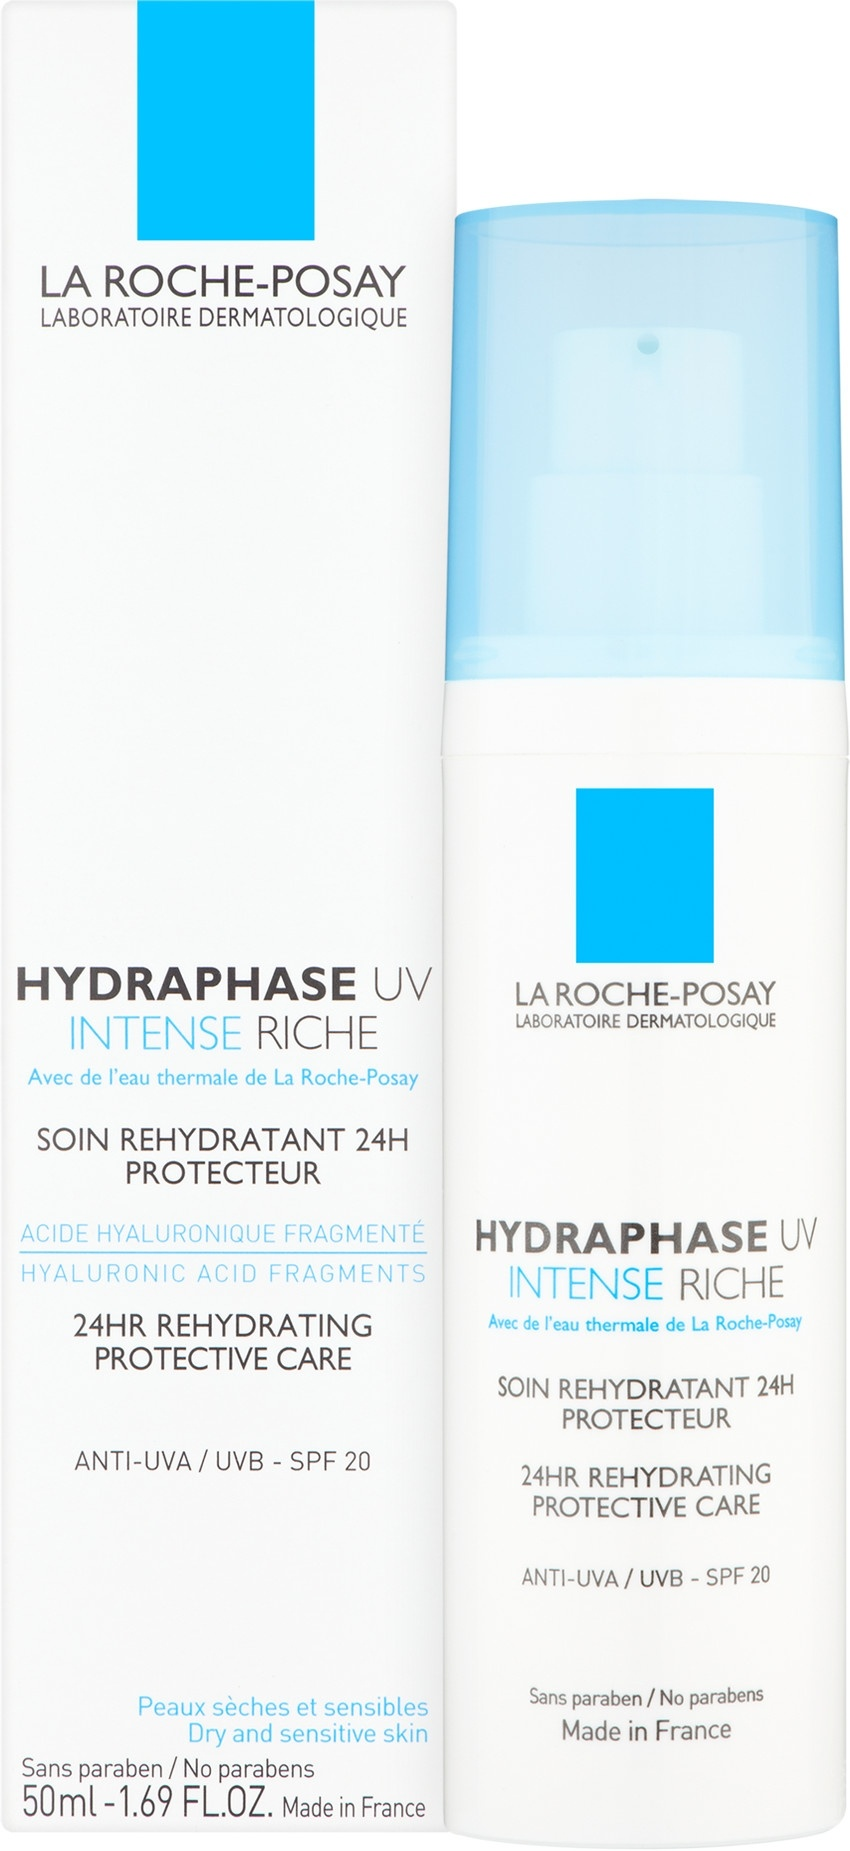 La Roche-Posay Hydraphase Intense UV Rich Cream SPF20, 50ml